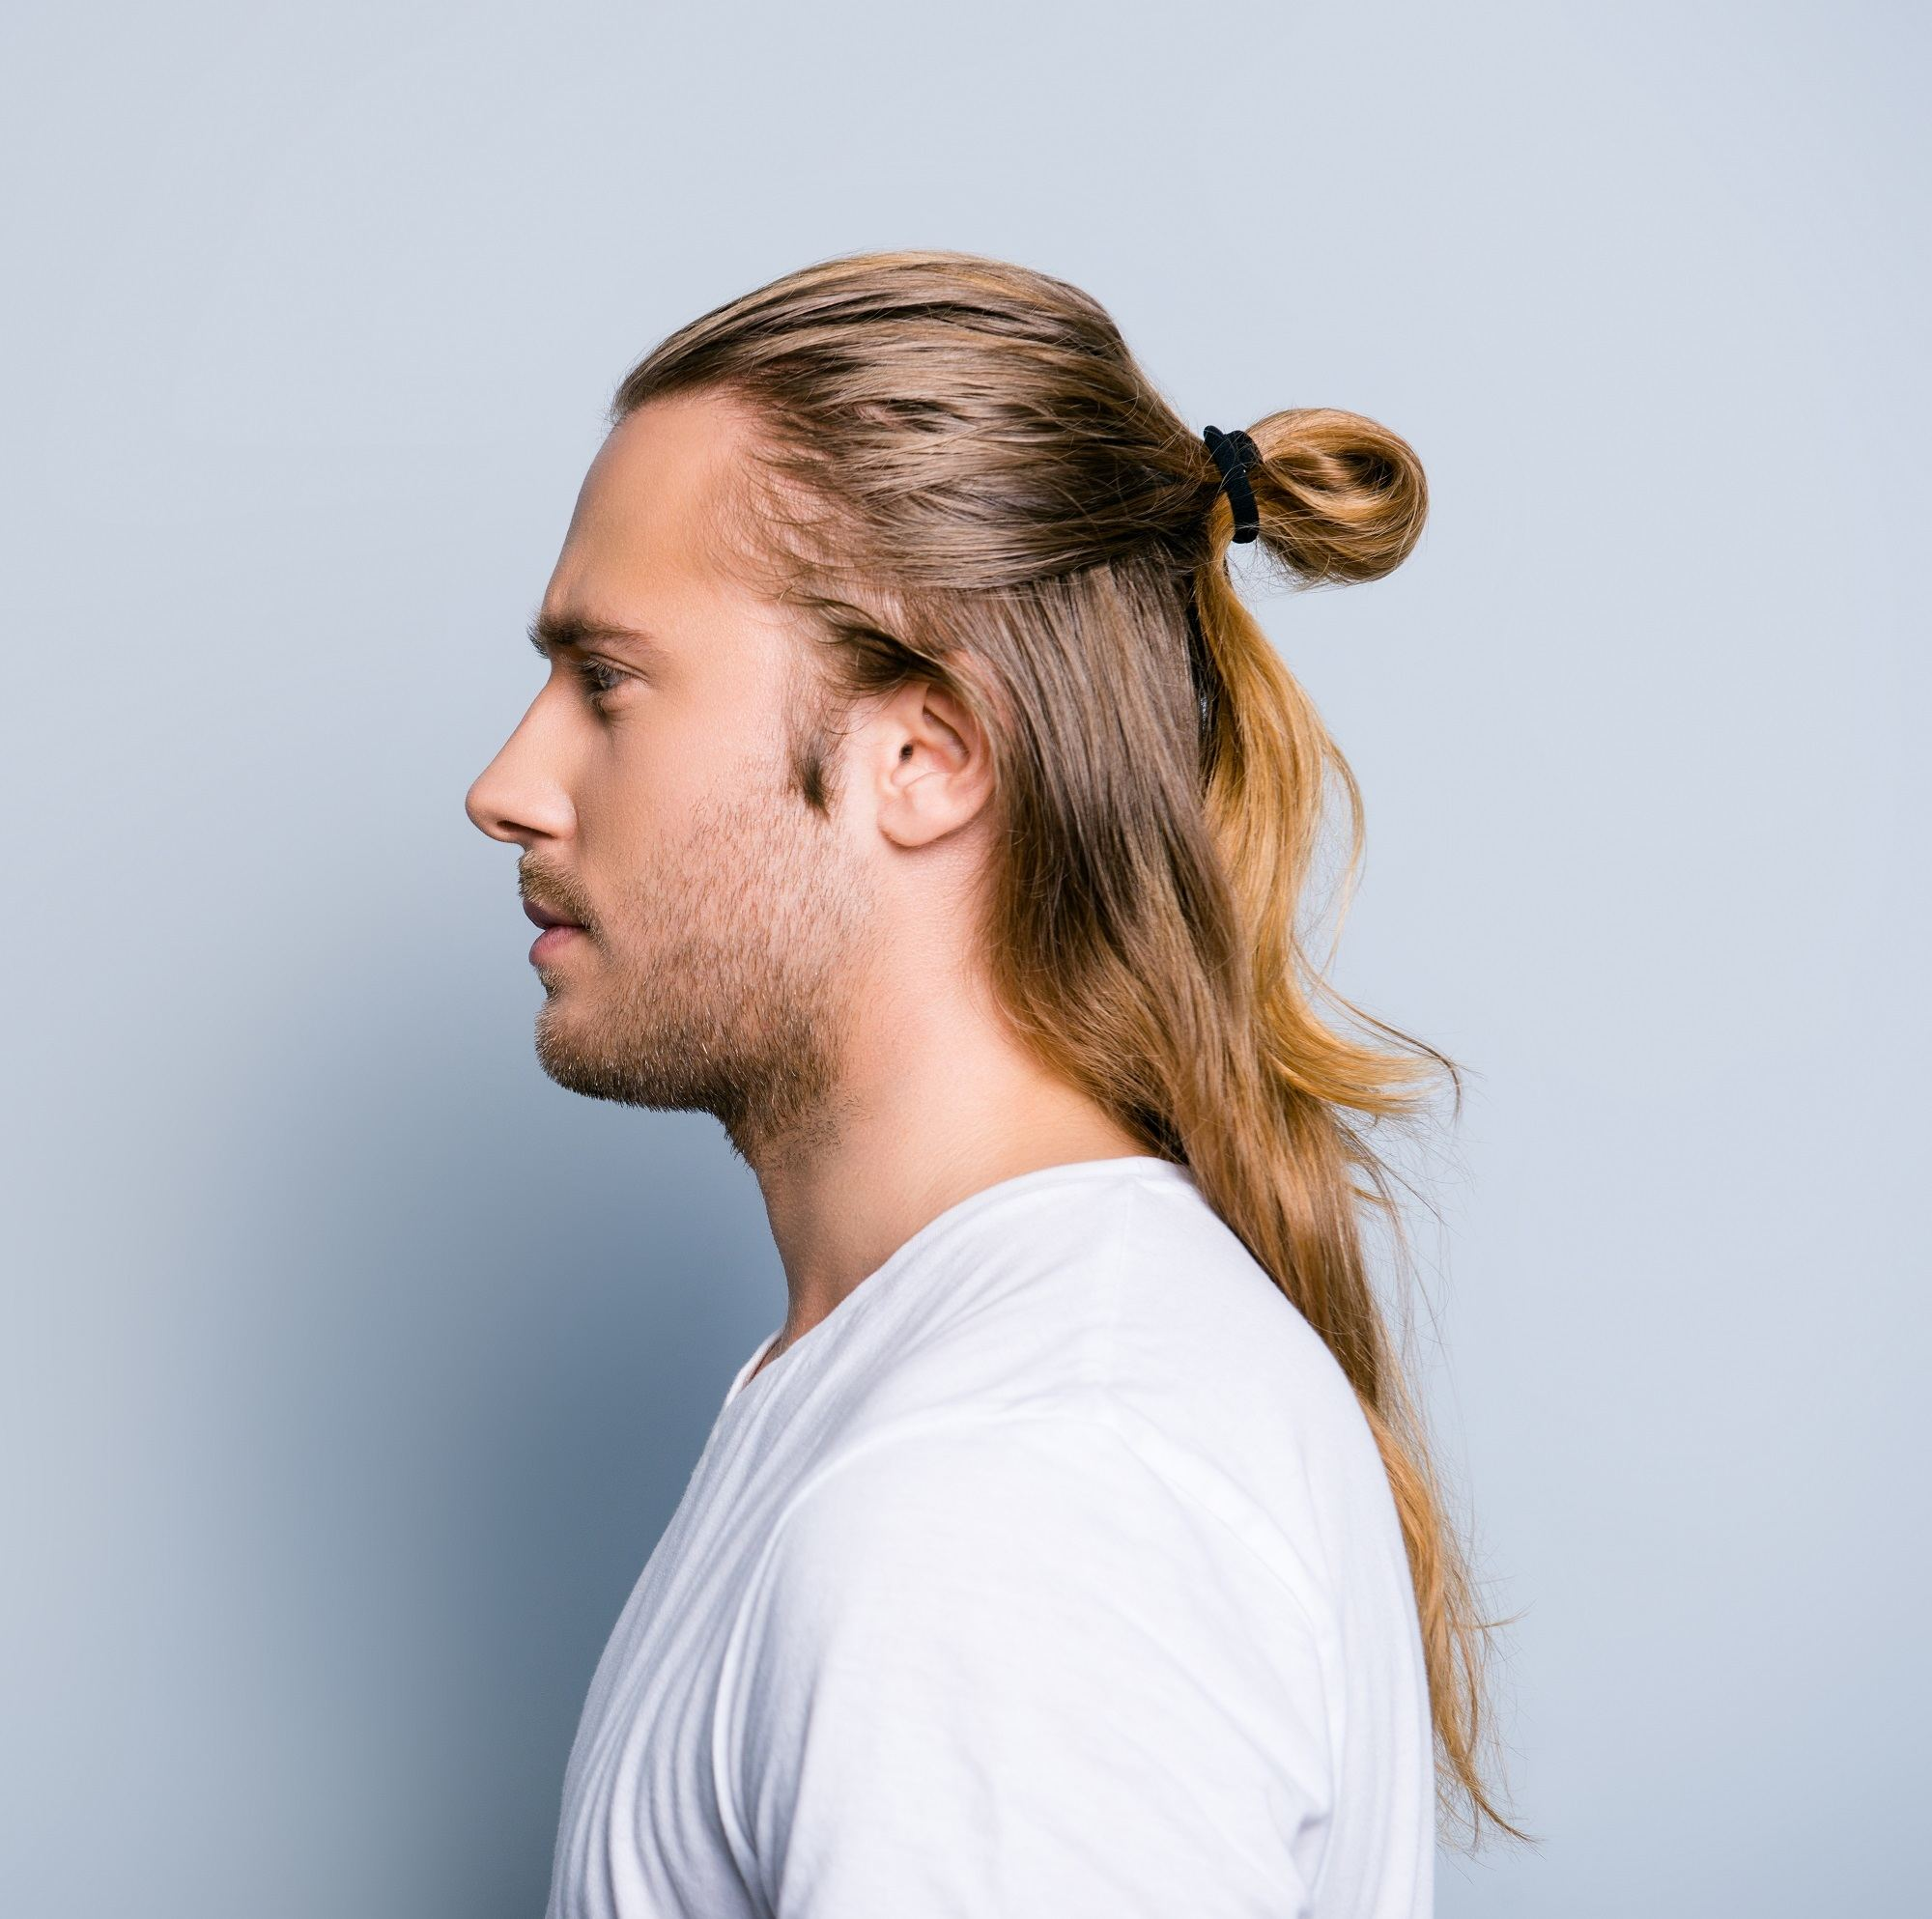 Man ponytail: Side view of a man with long brown hair in a half ponytail